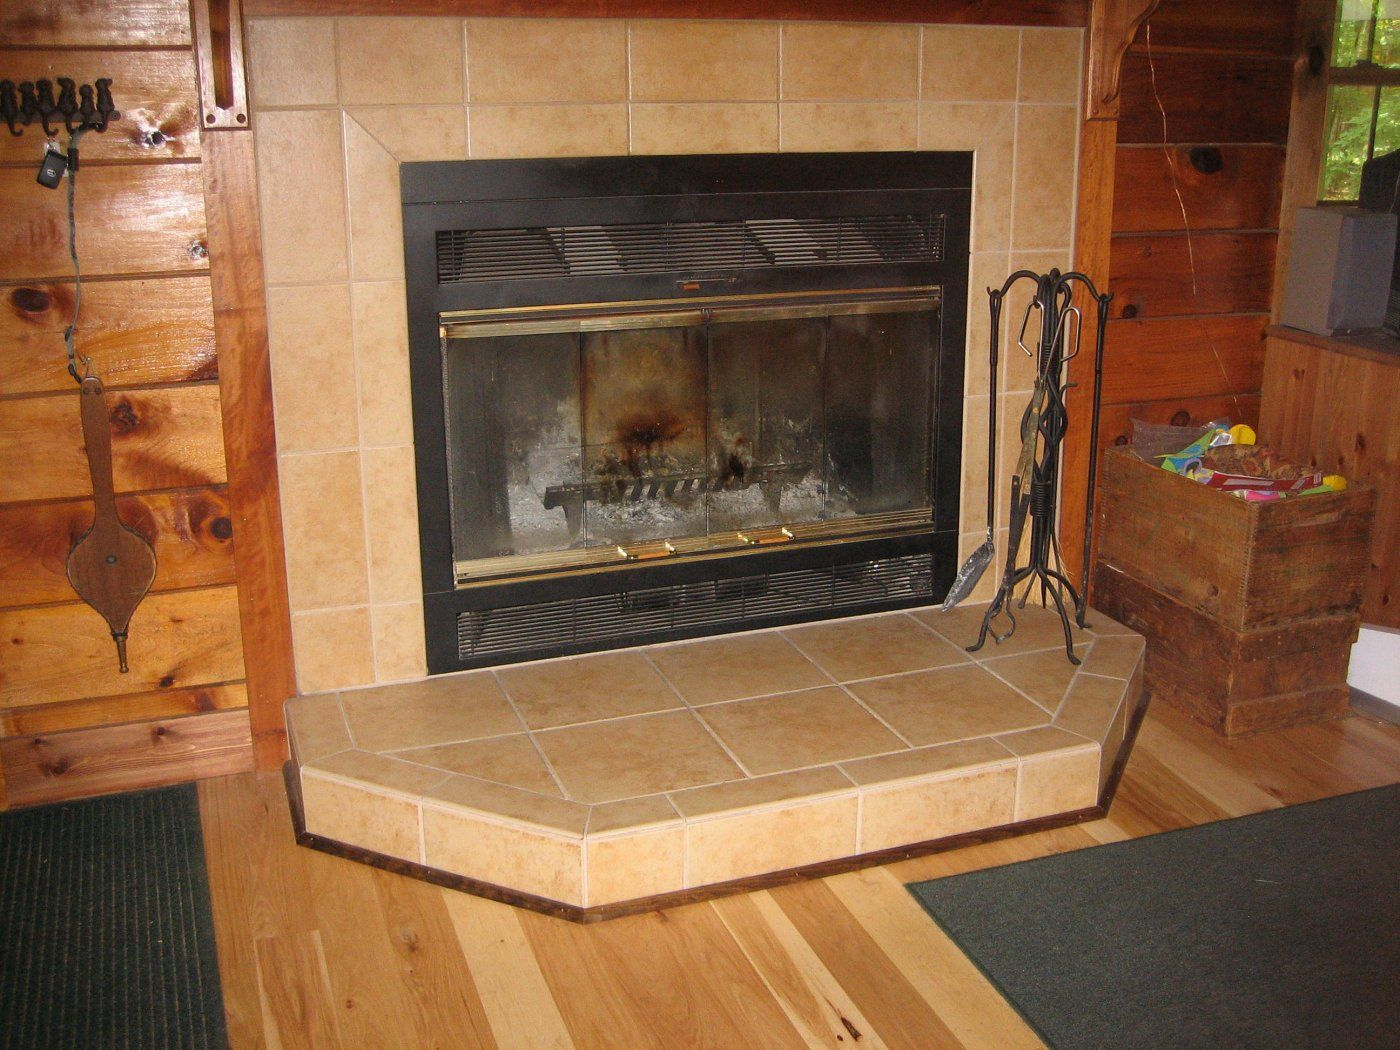 Pictures of wood stoves in alcoves | Hearth.com Forums Home